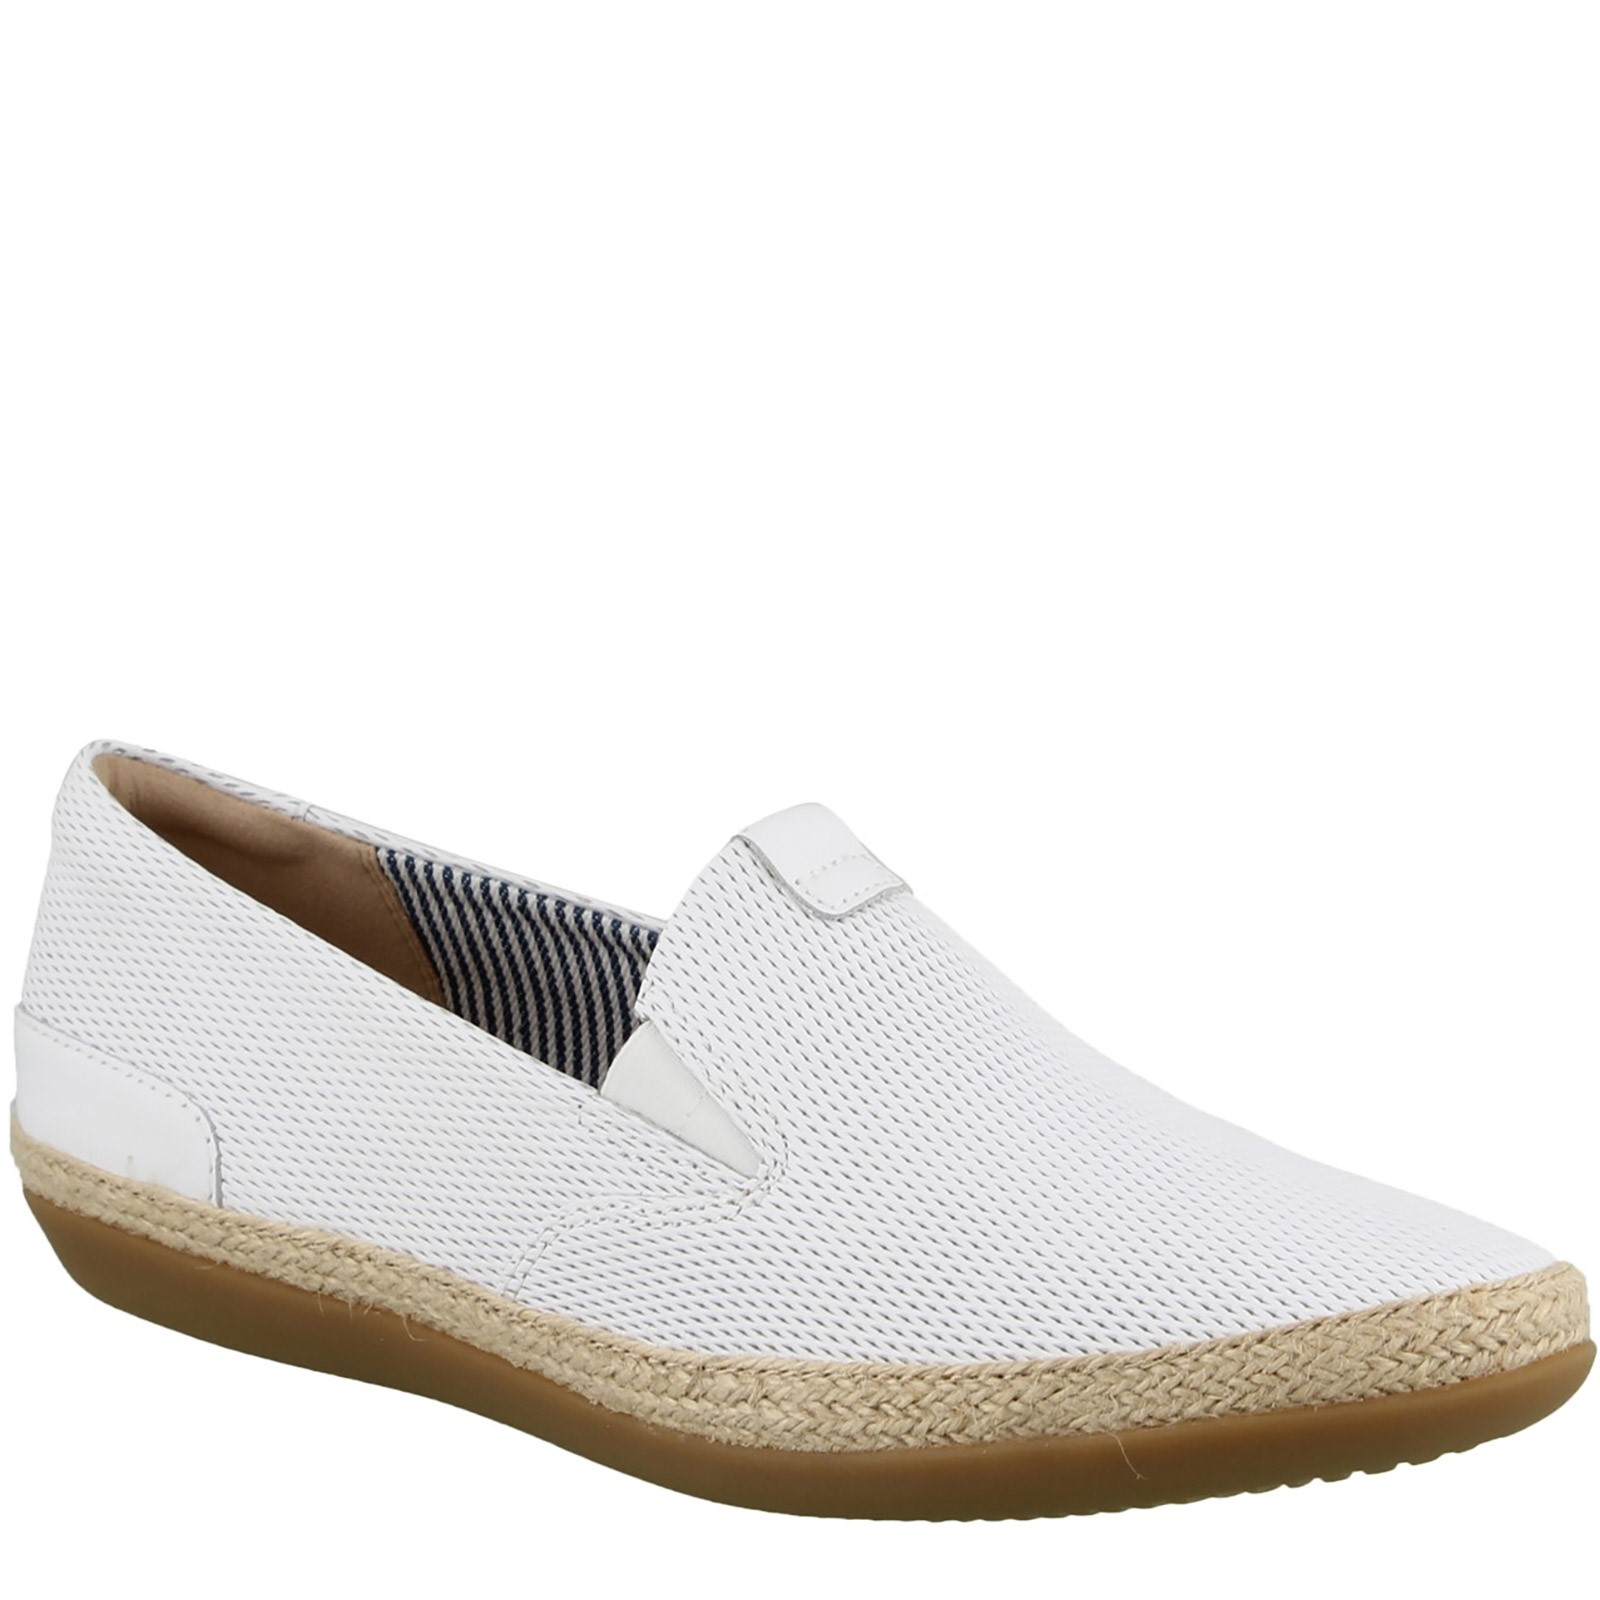 Women's Clarks, Danelly Iris Slip on Espadrilles